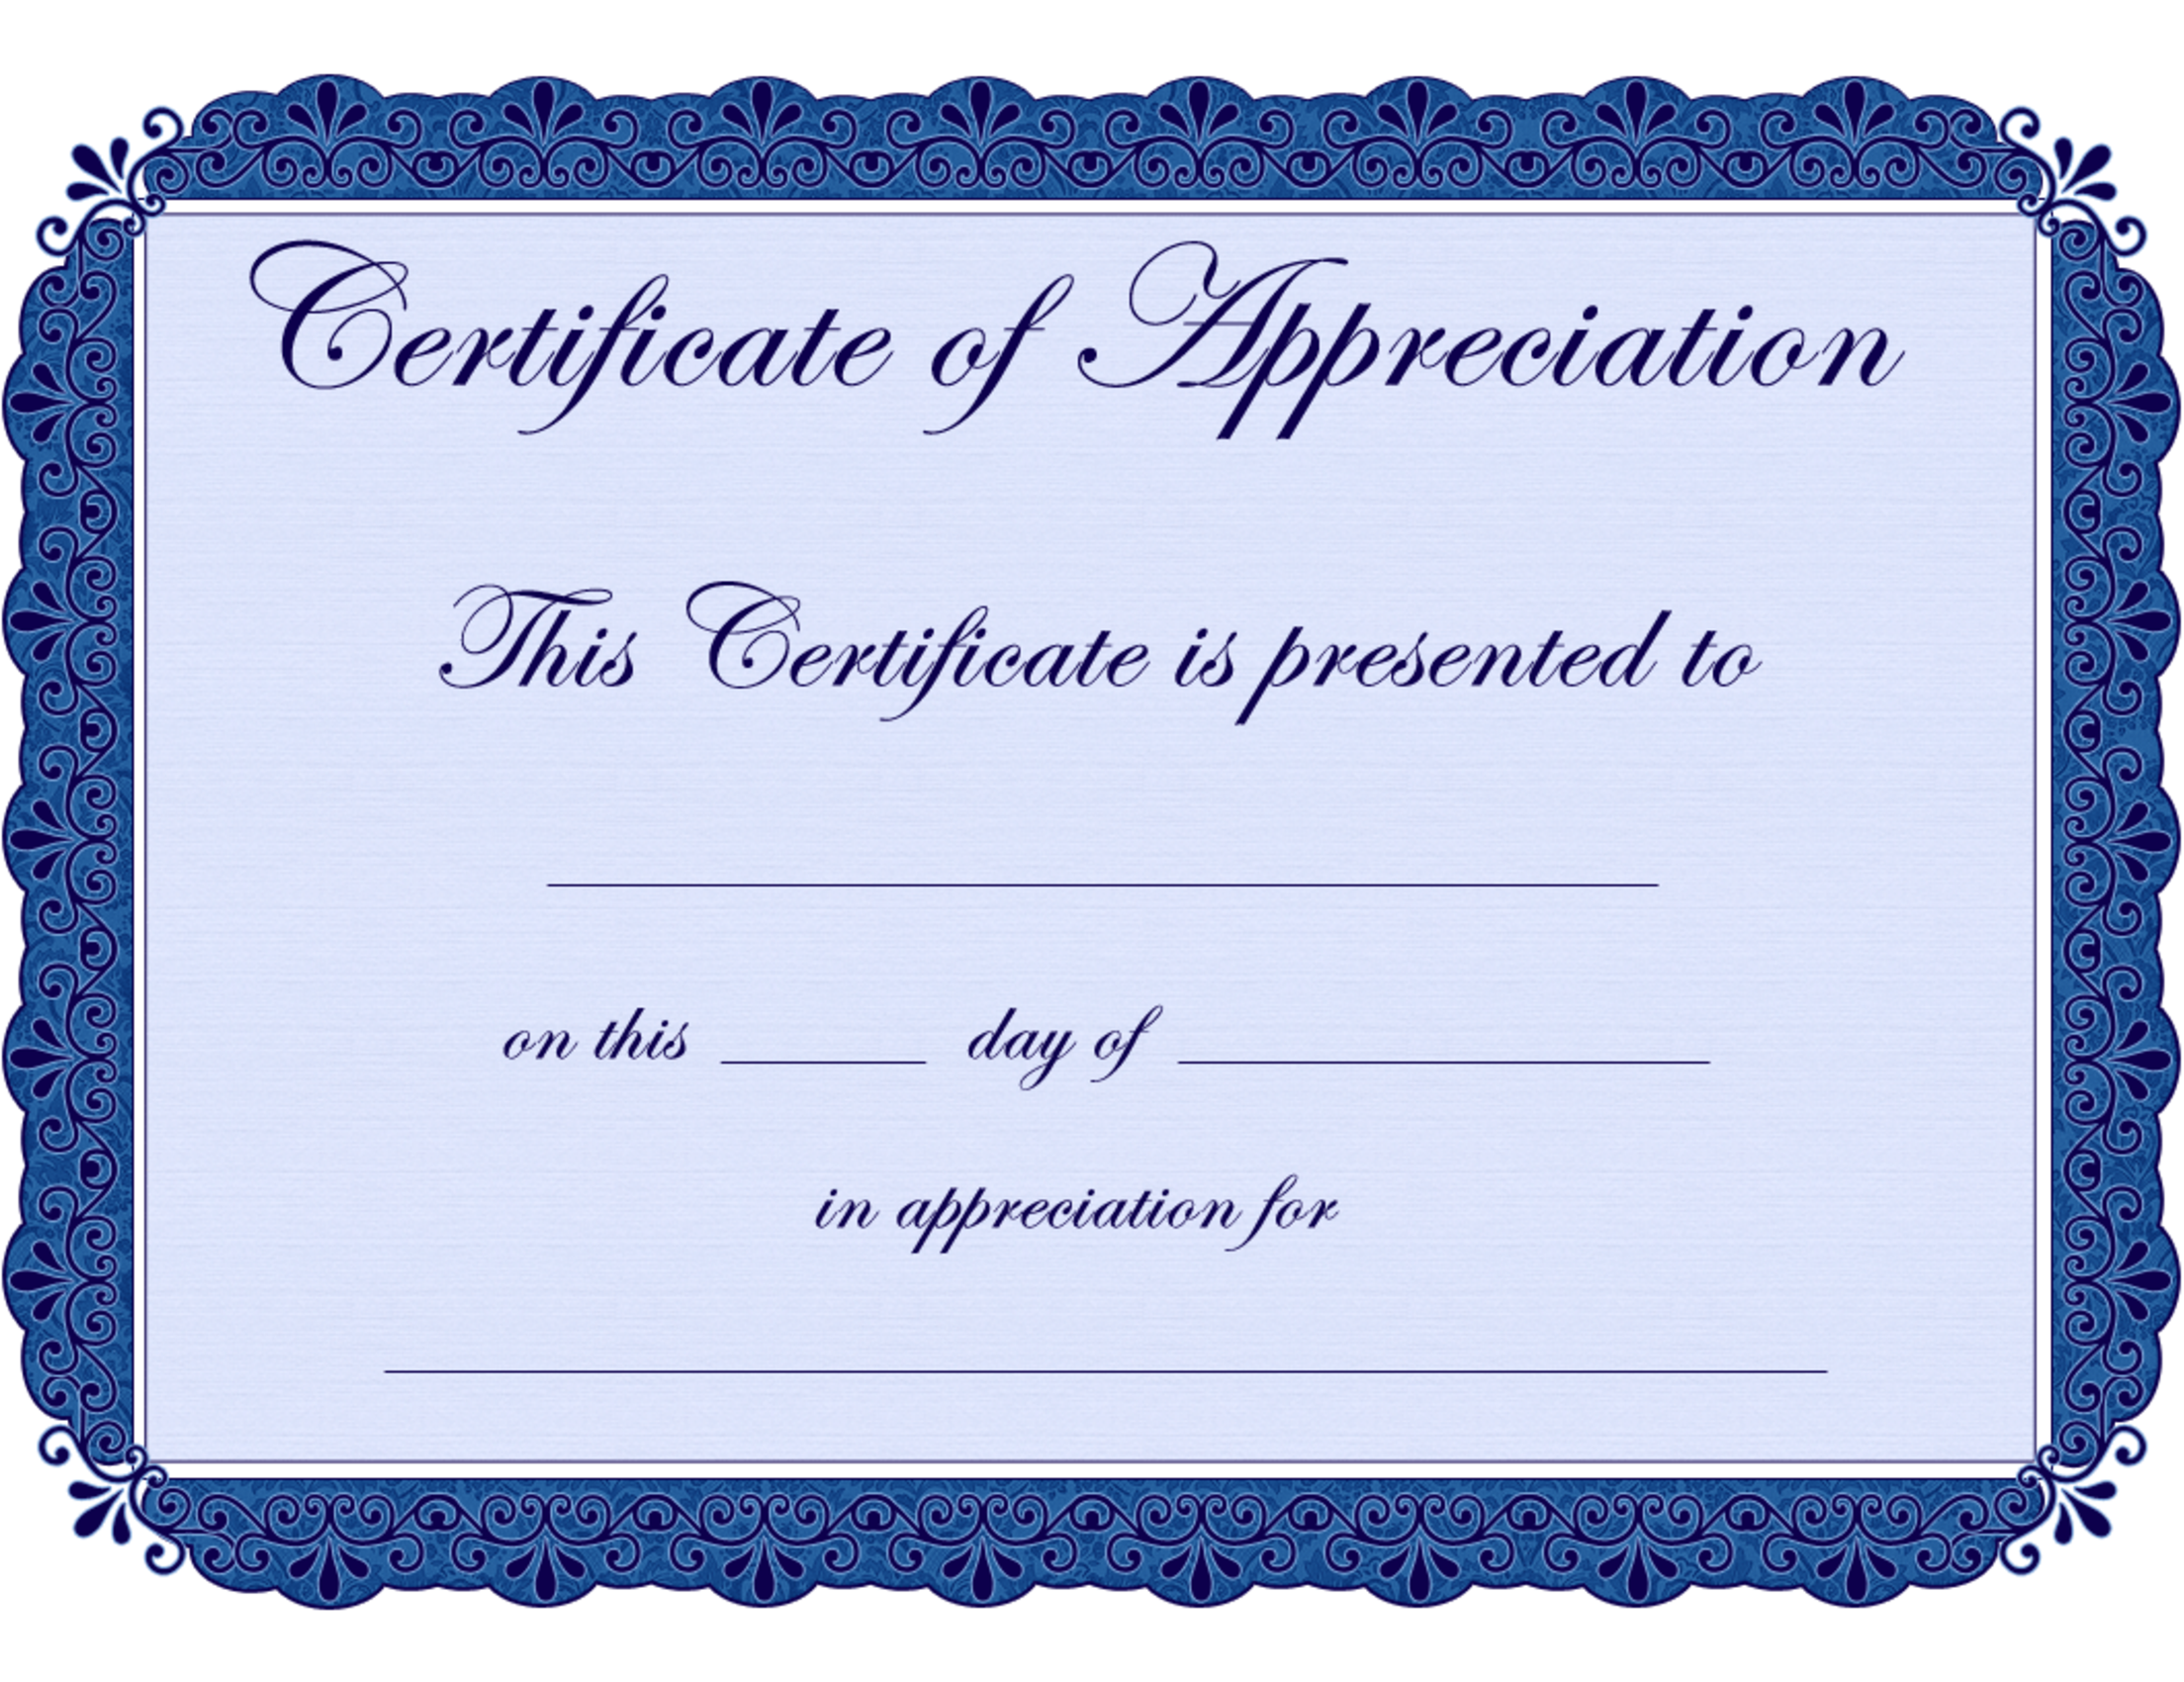 Superior Free Printable Certificates Certificate Of Appreciation Certificate ... |  Certificate Of Appreciation | Pinterest | Free Printable Certificates, ... Ideas Free Appreciation Certificate Templates